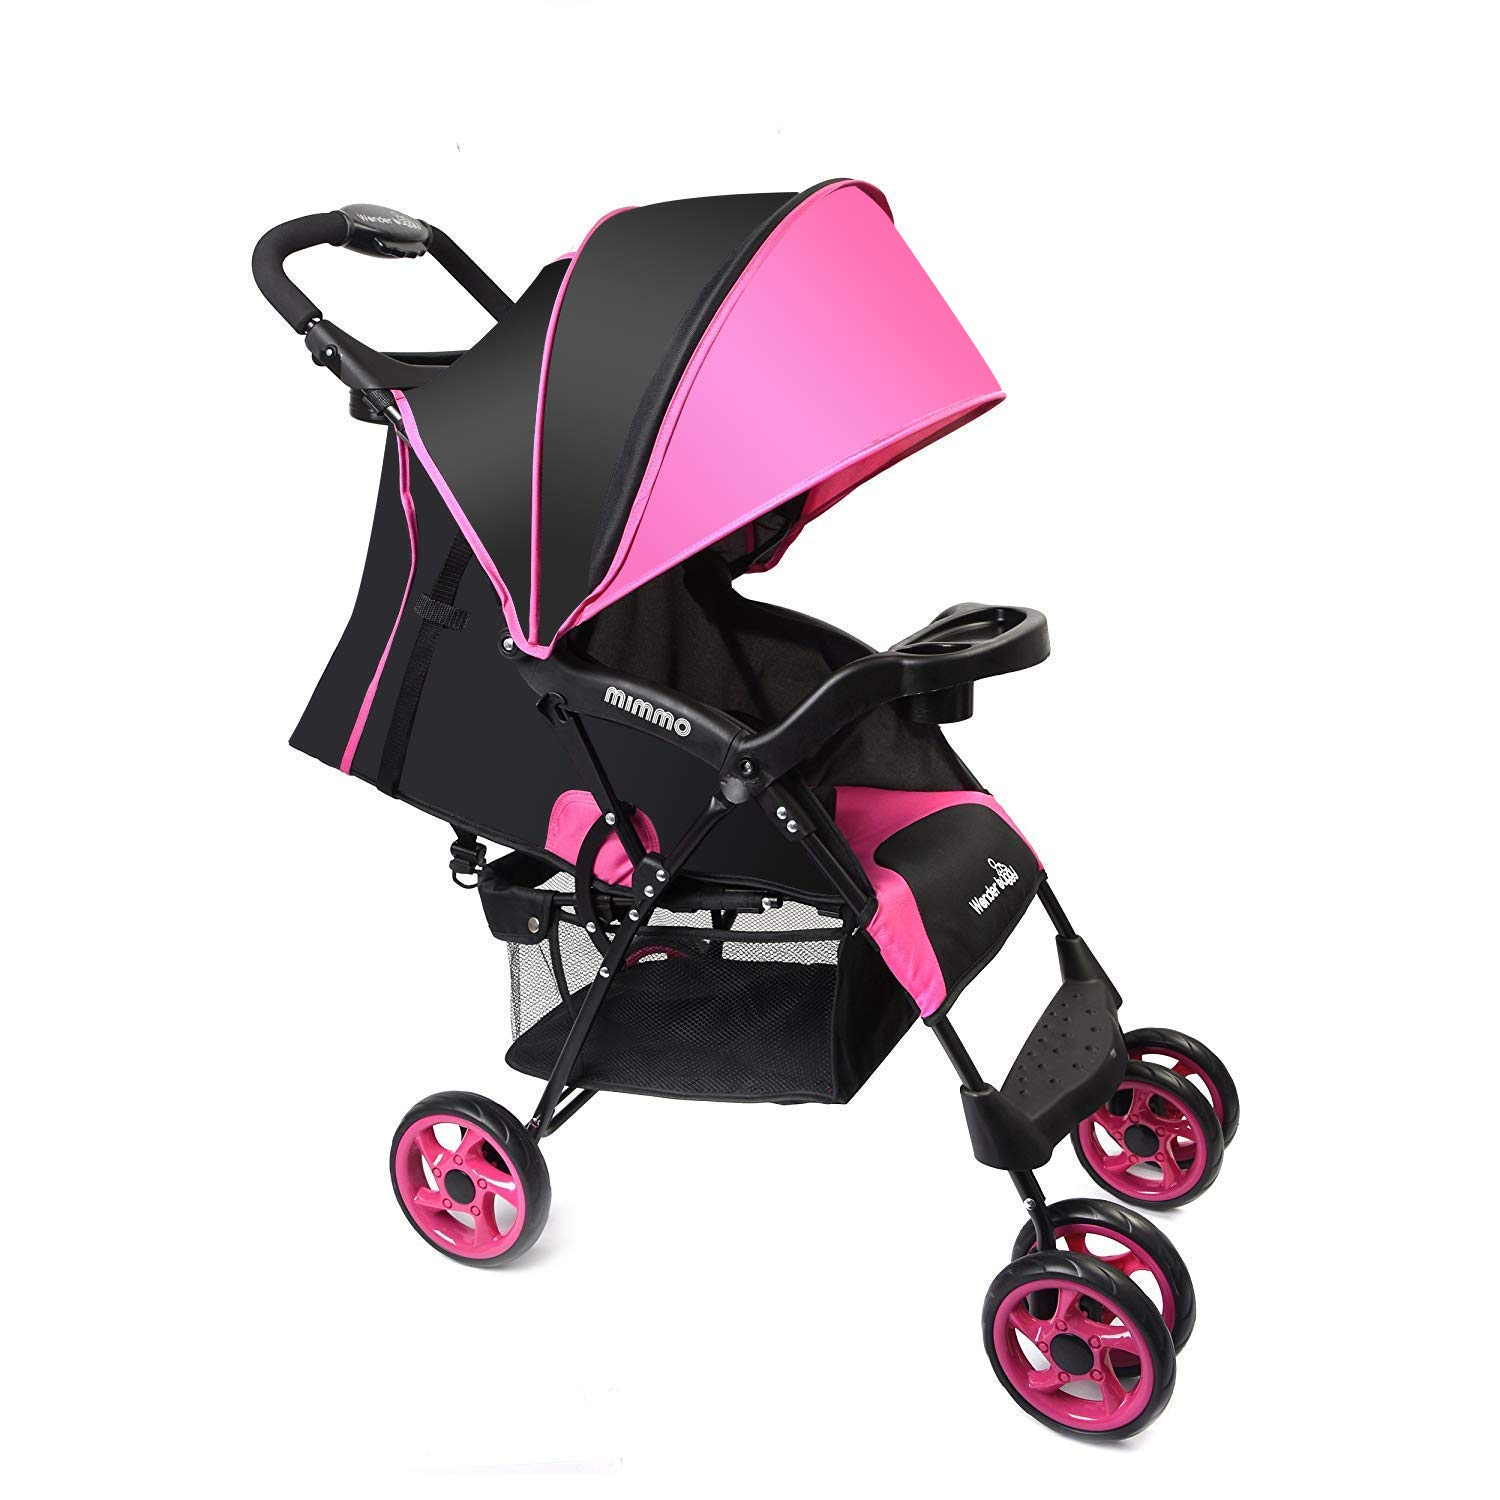 Wonder buggy Lightweight Baby Stroller, 5-Point Safety System with Round Canopy and Basket, Multi Positions Easy Fold (Pink)